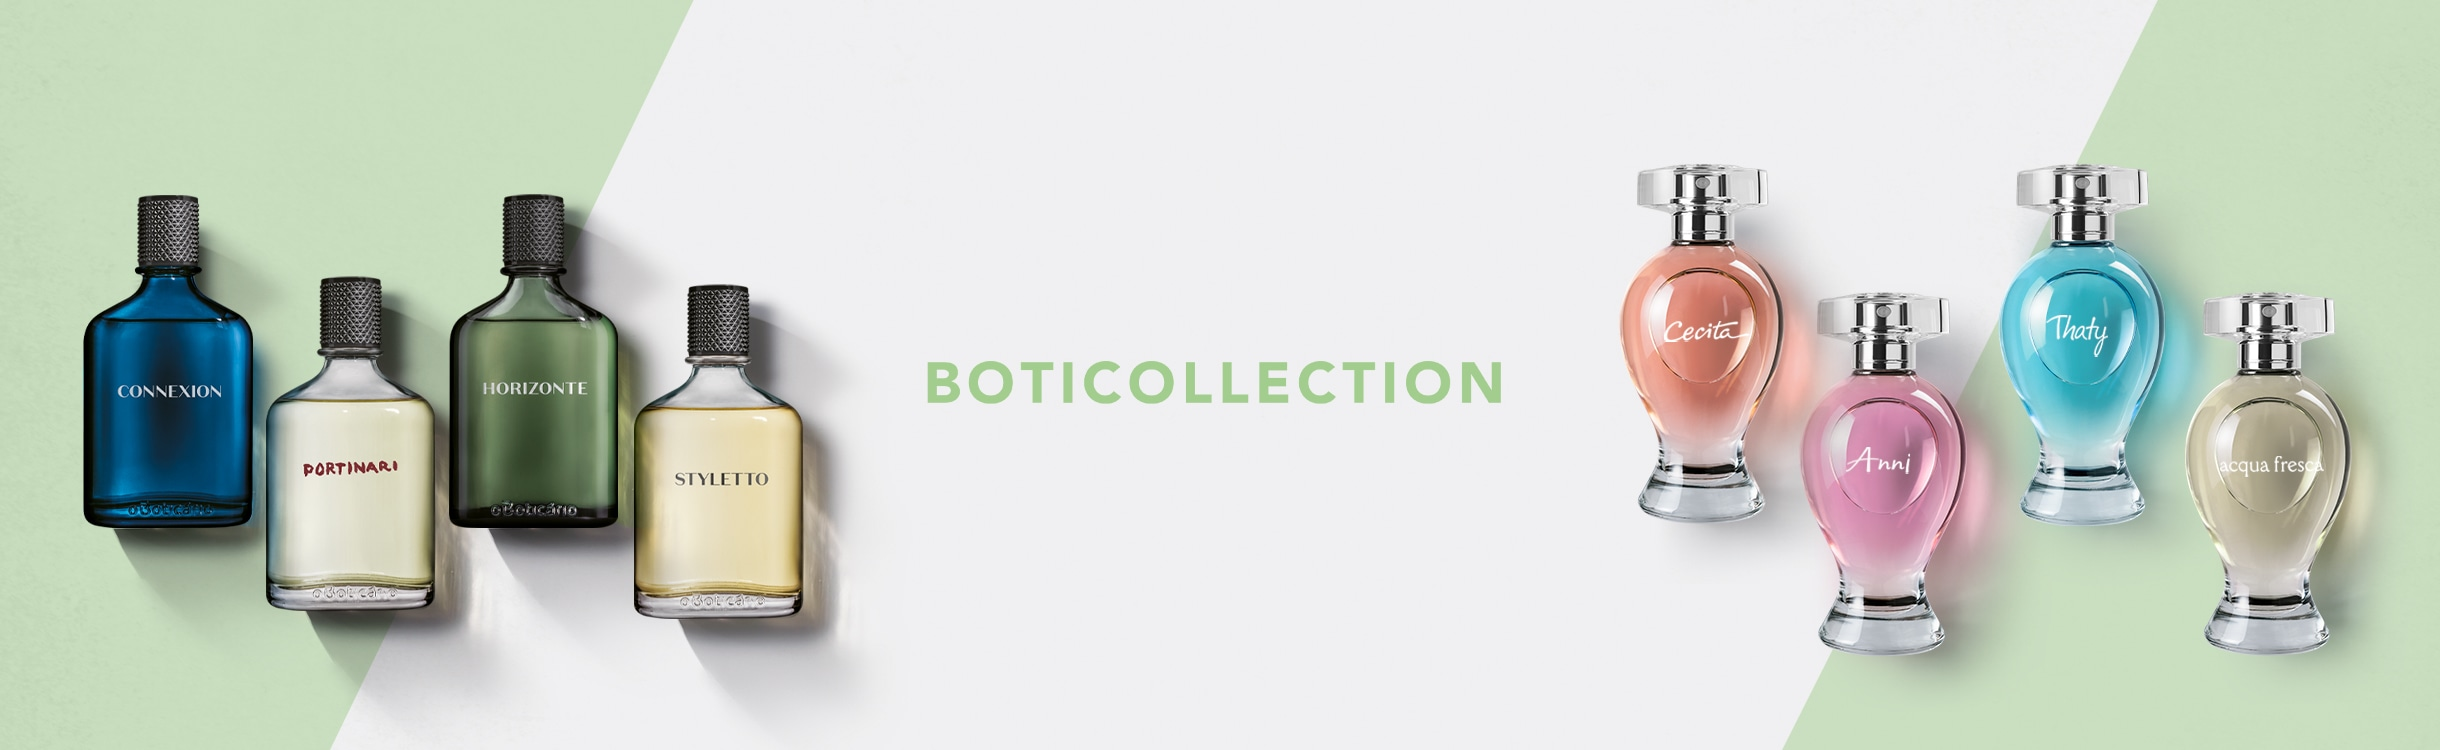 Anni: Boticollection